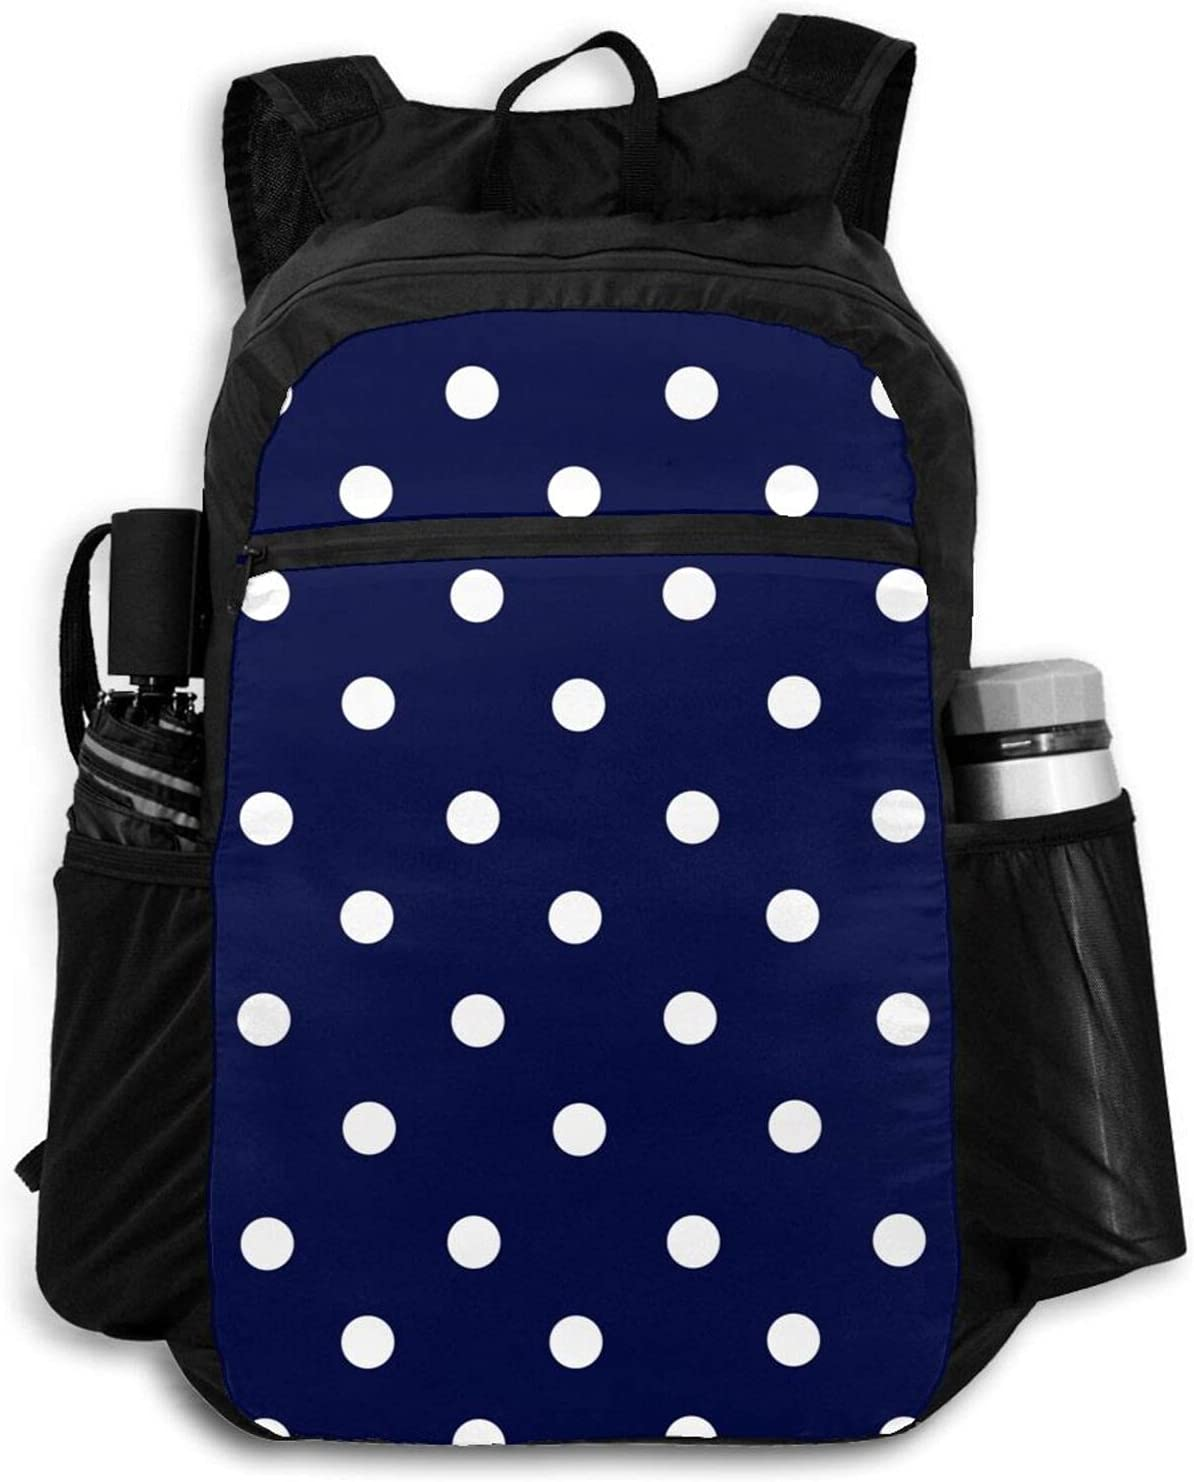 Zolama White Dots Dark Blue Backpacks Packabl Women for Men Large discharge Max 52% OFF sale Cute